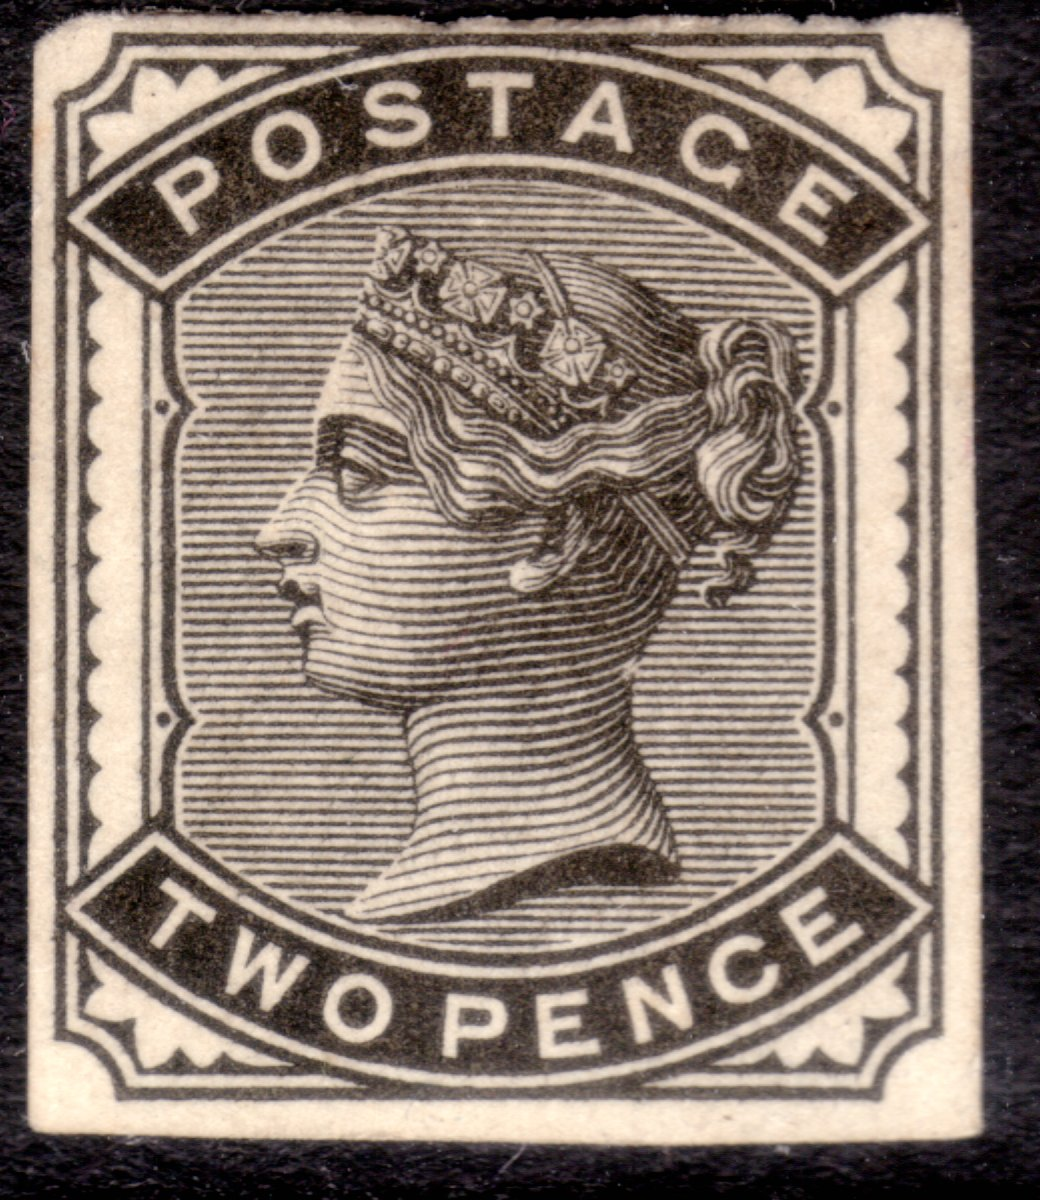 1880 2d Plate Proof